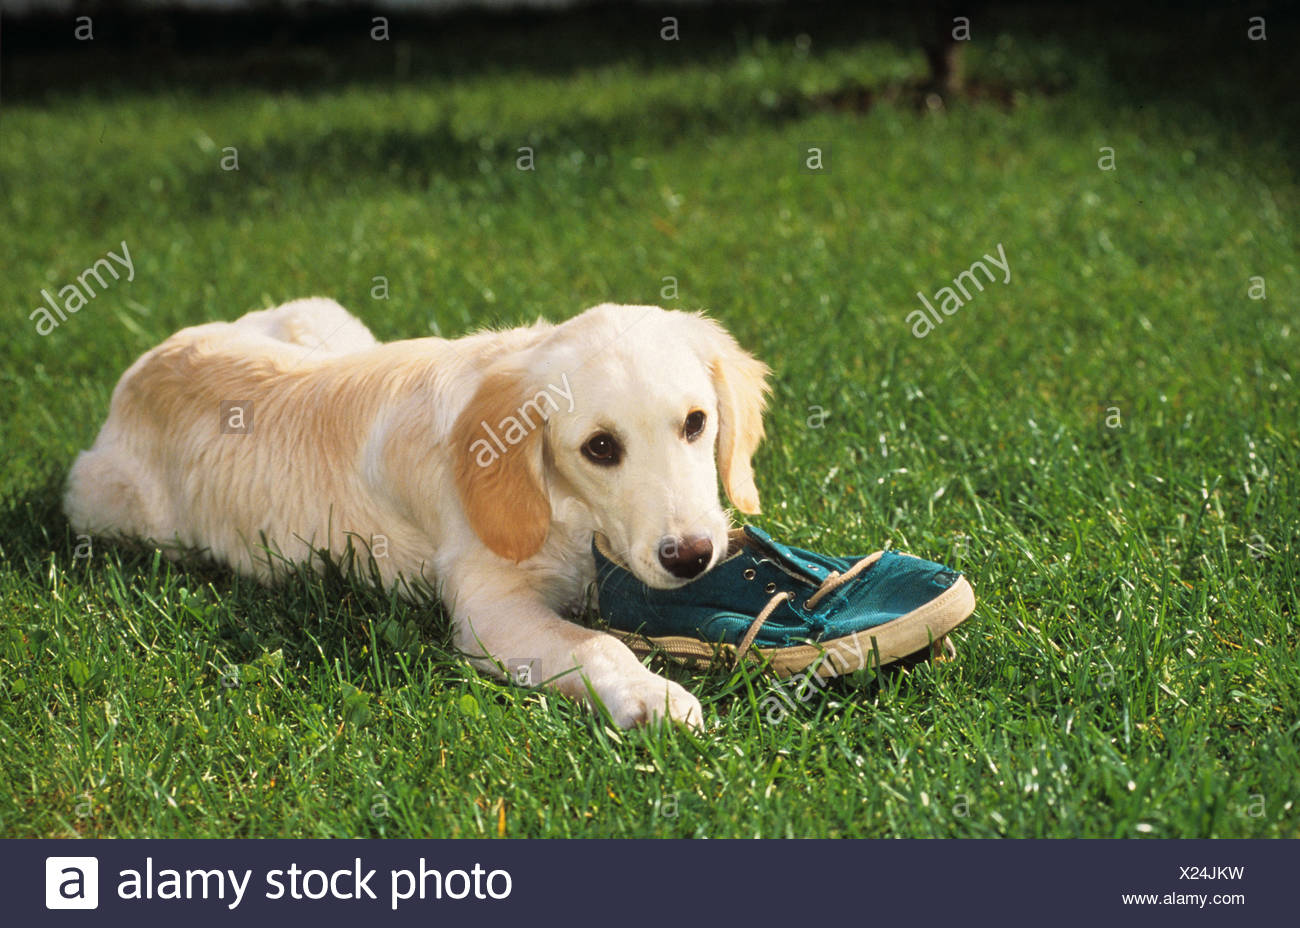 bad habit: young Golden Retriever  chewing on a shoe - Stock Image